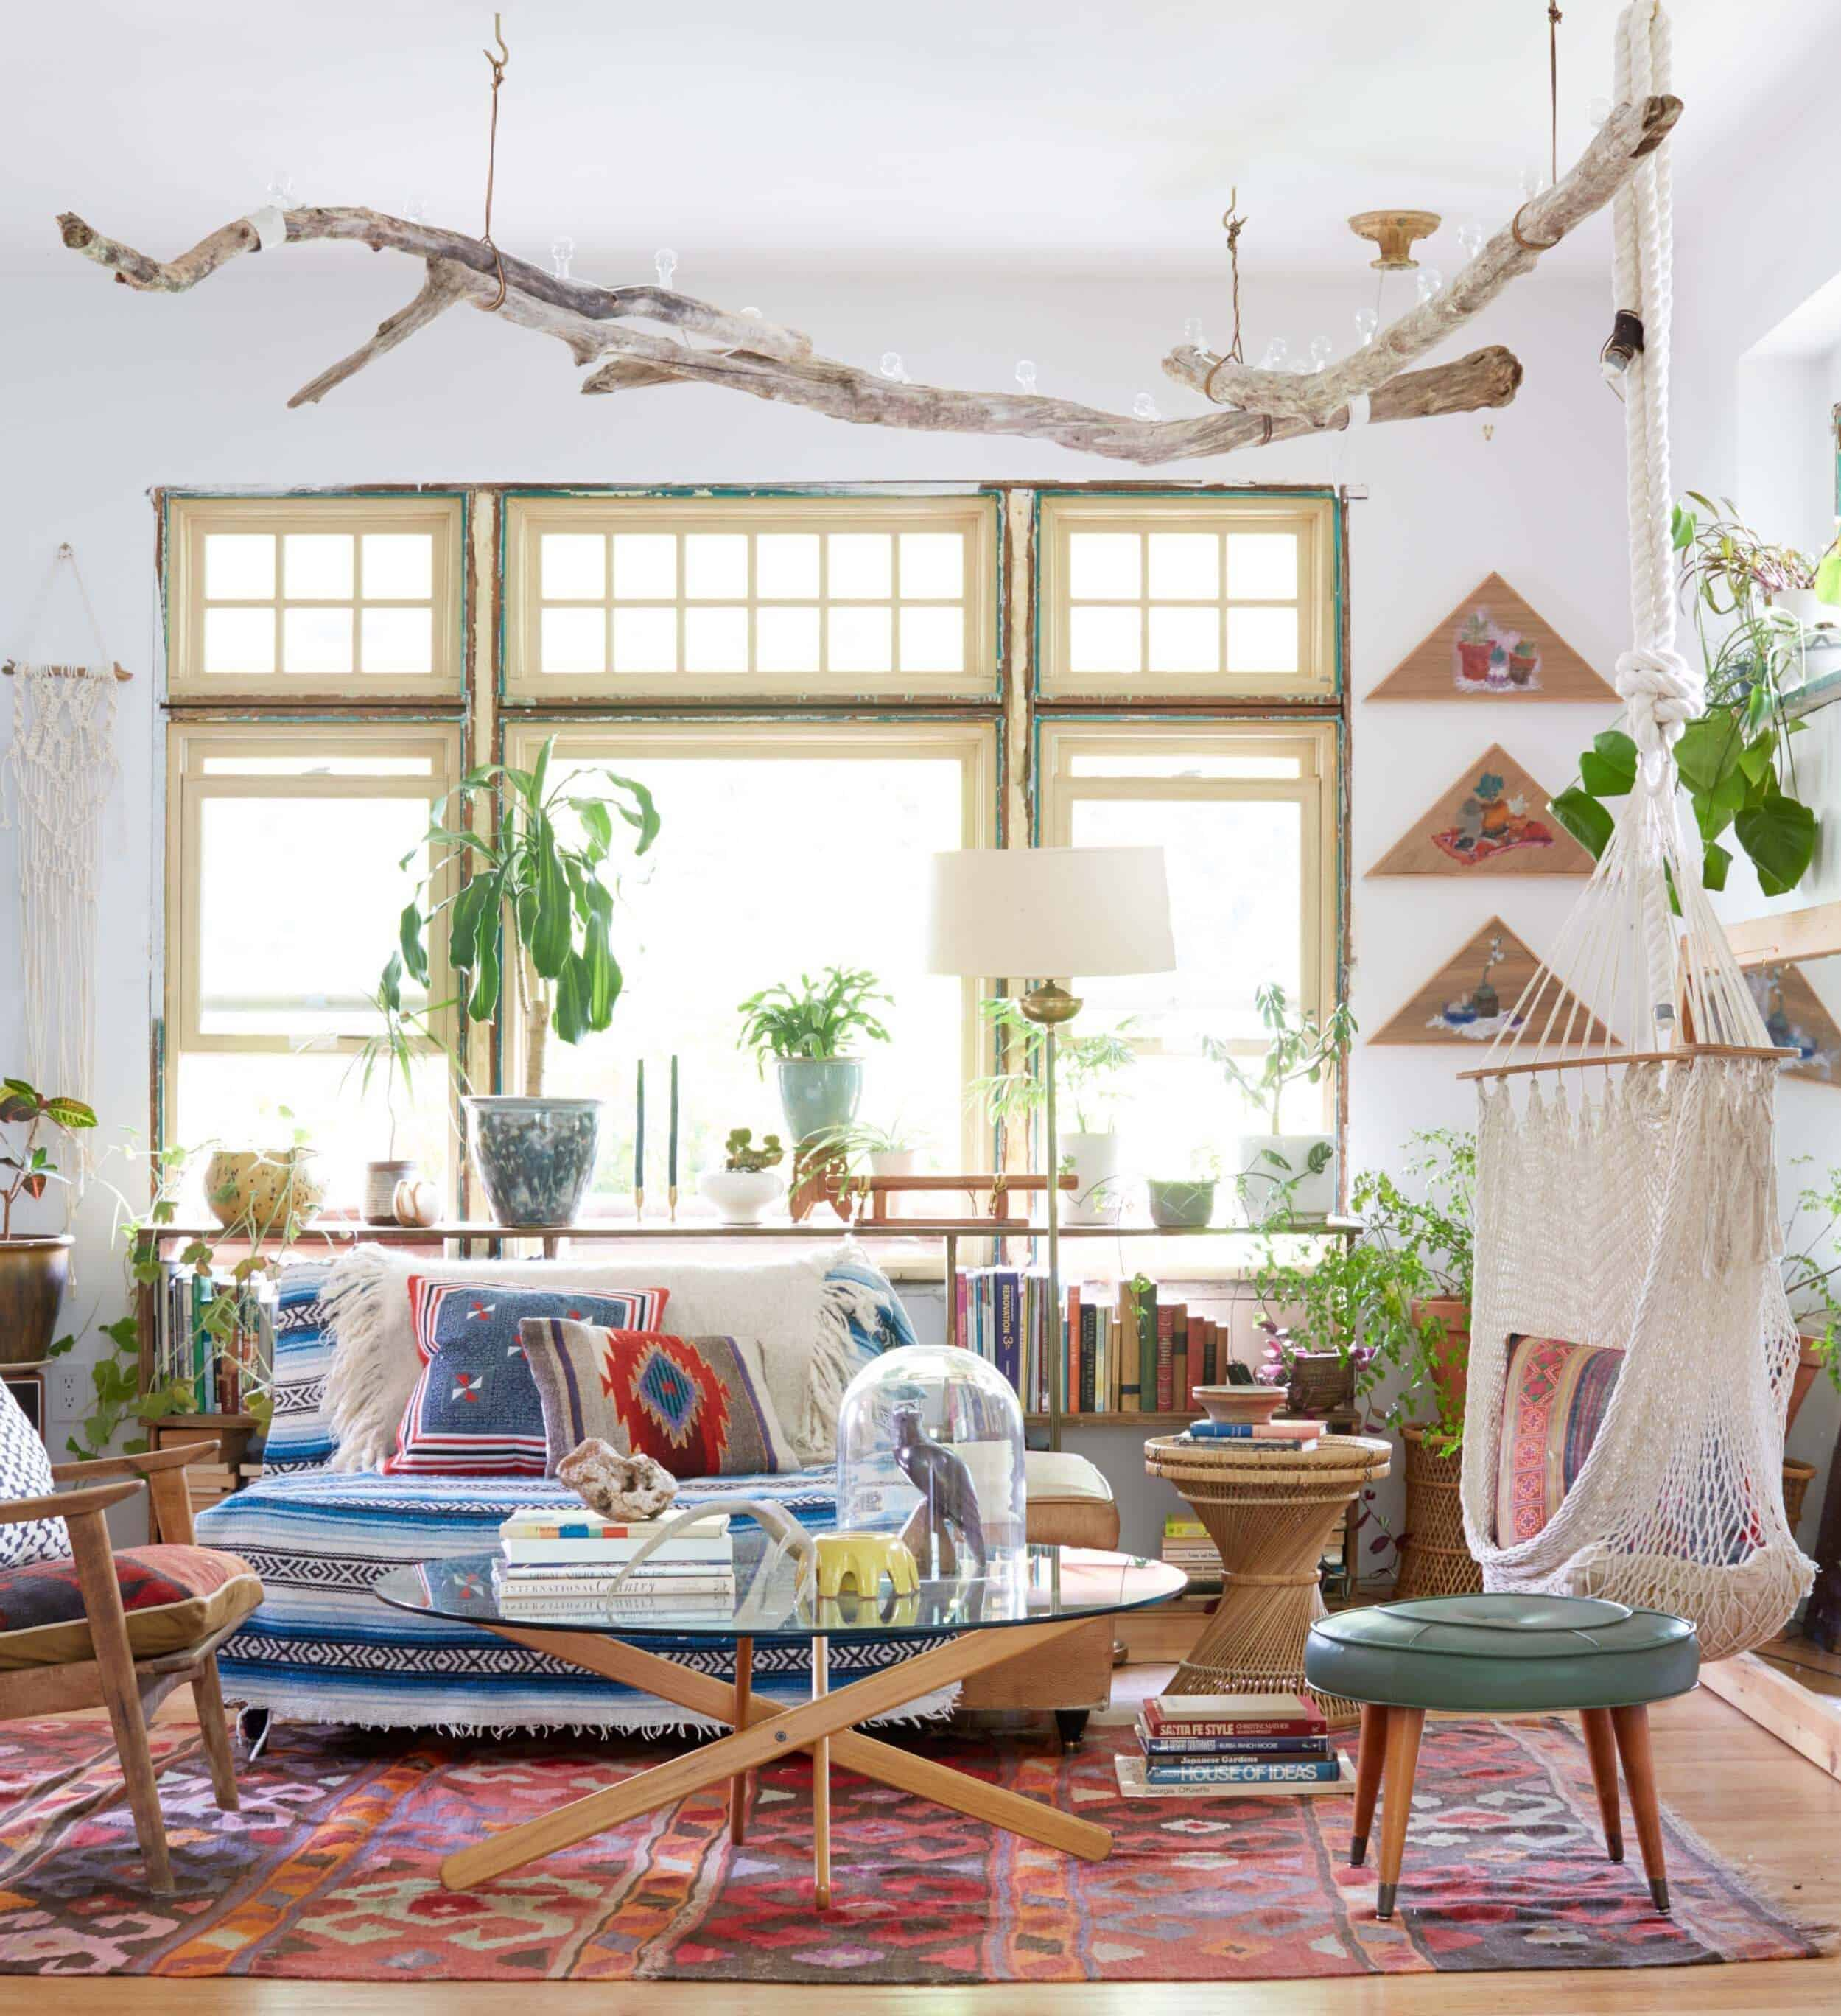 Emily Henderson_Target_Find Your Style_Vignette_Boho_Anthro_Eclectic_Collected_10